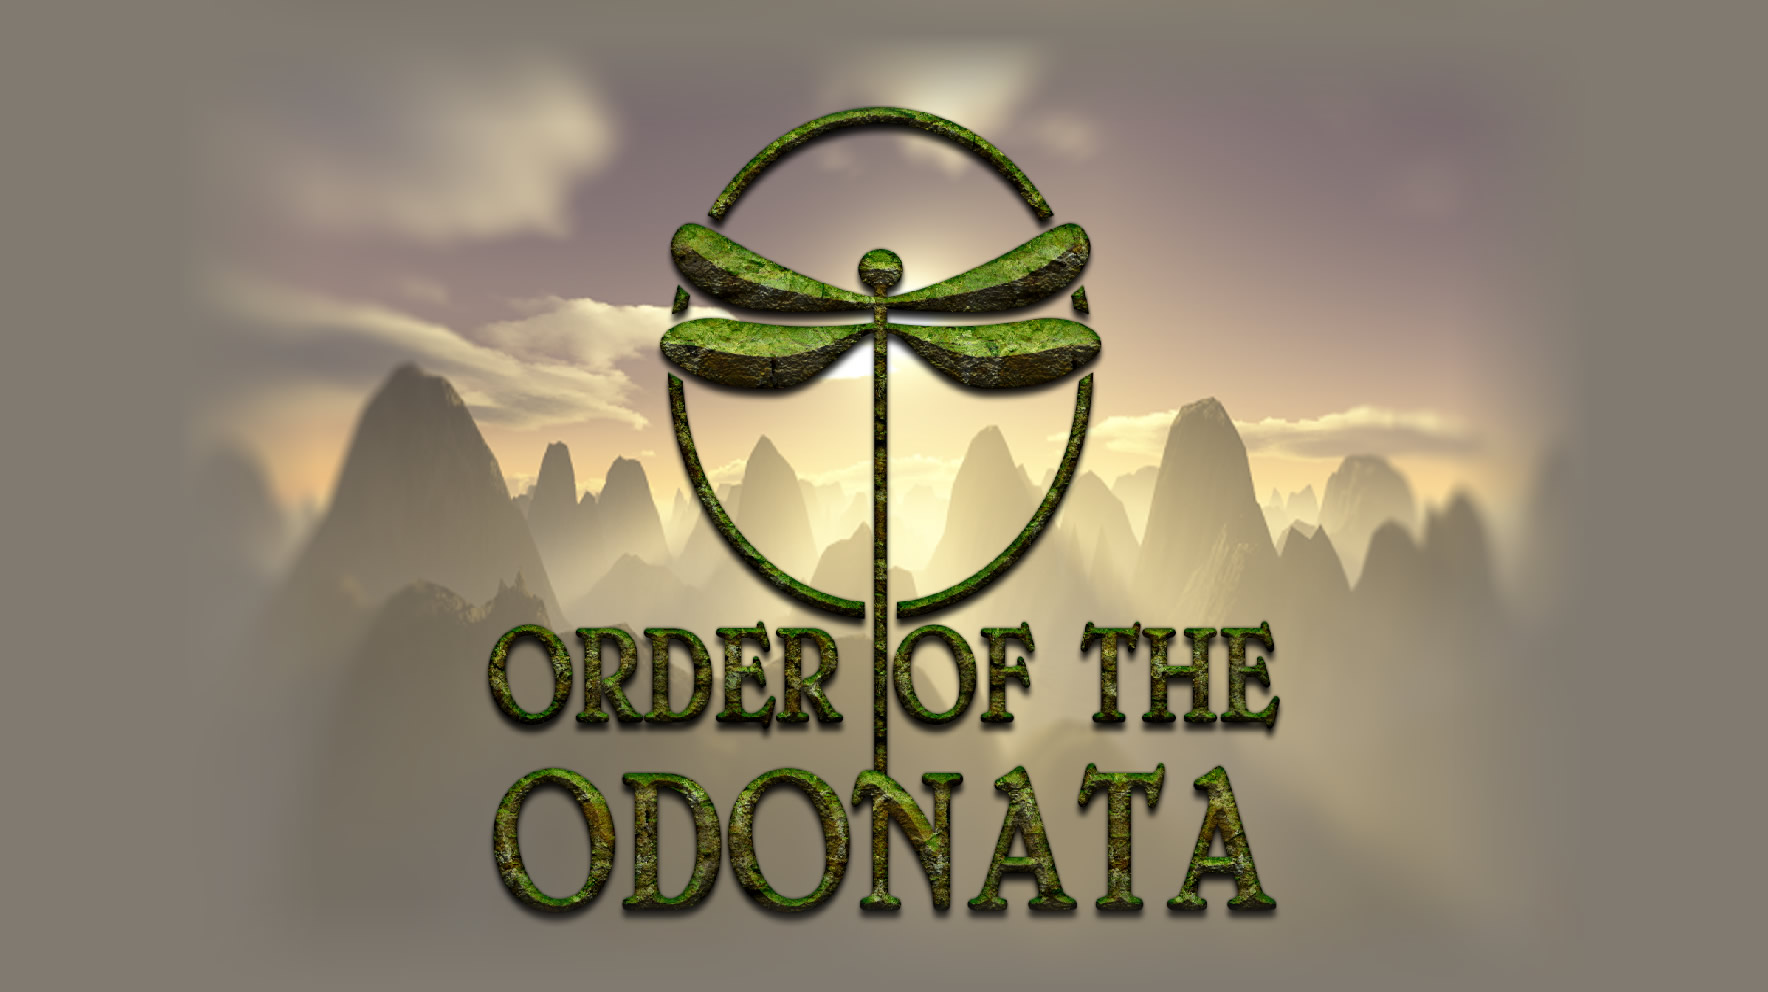 order-of-the-odonata-1.jpg